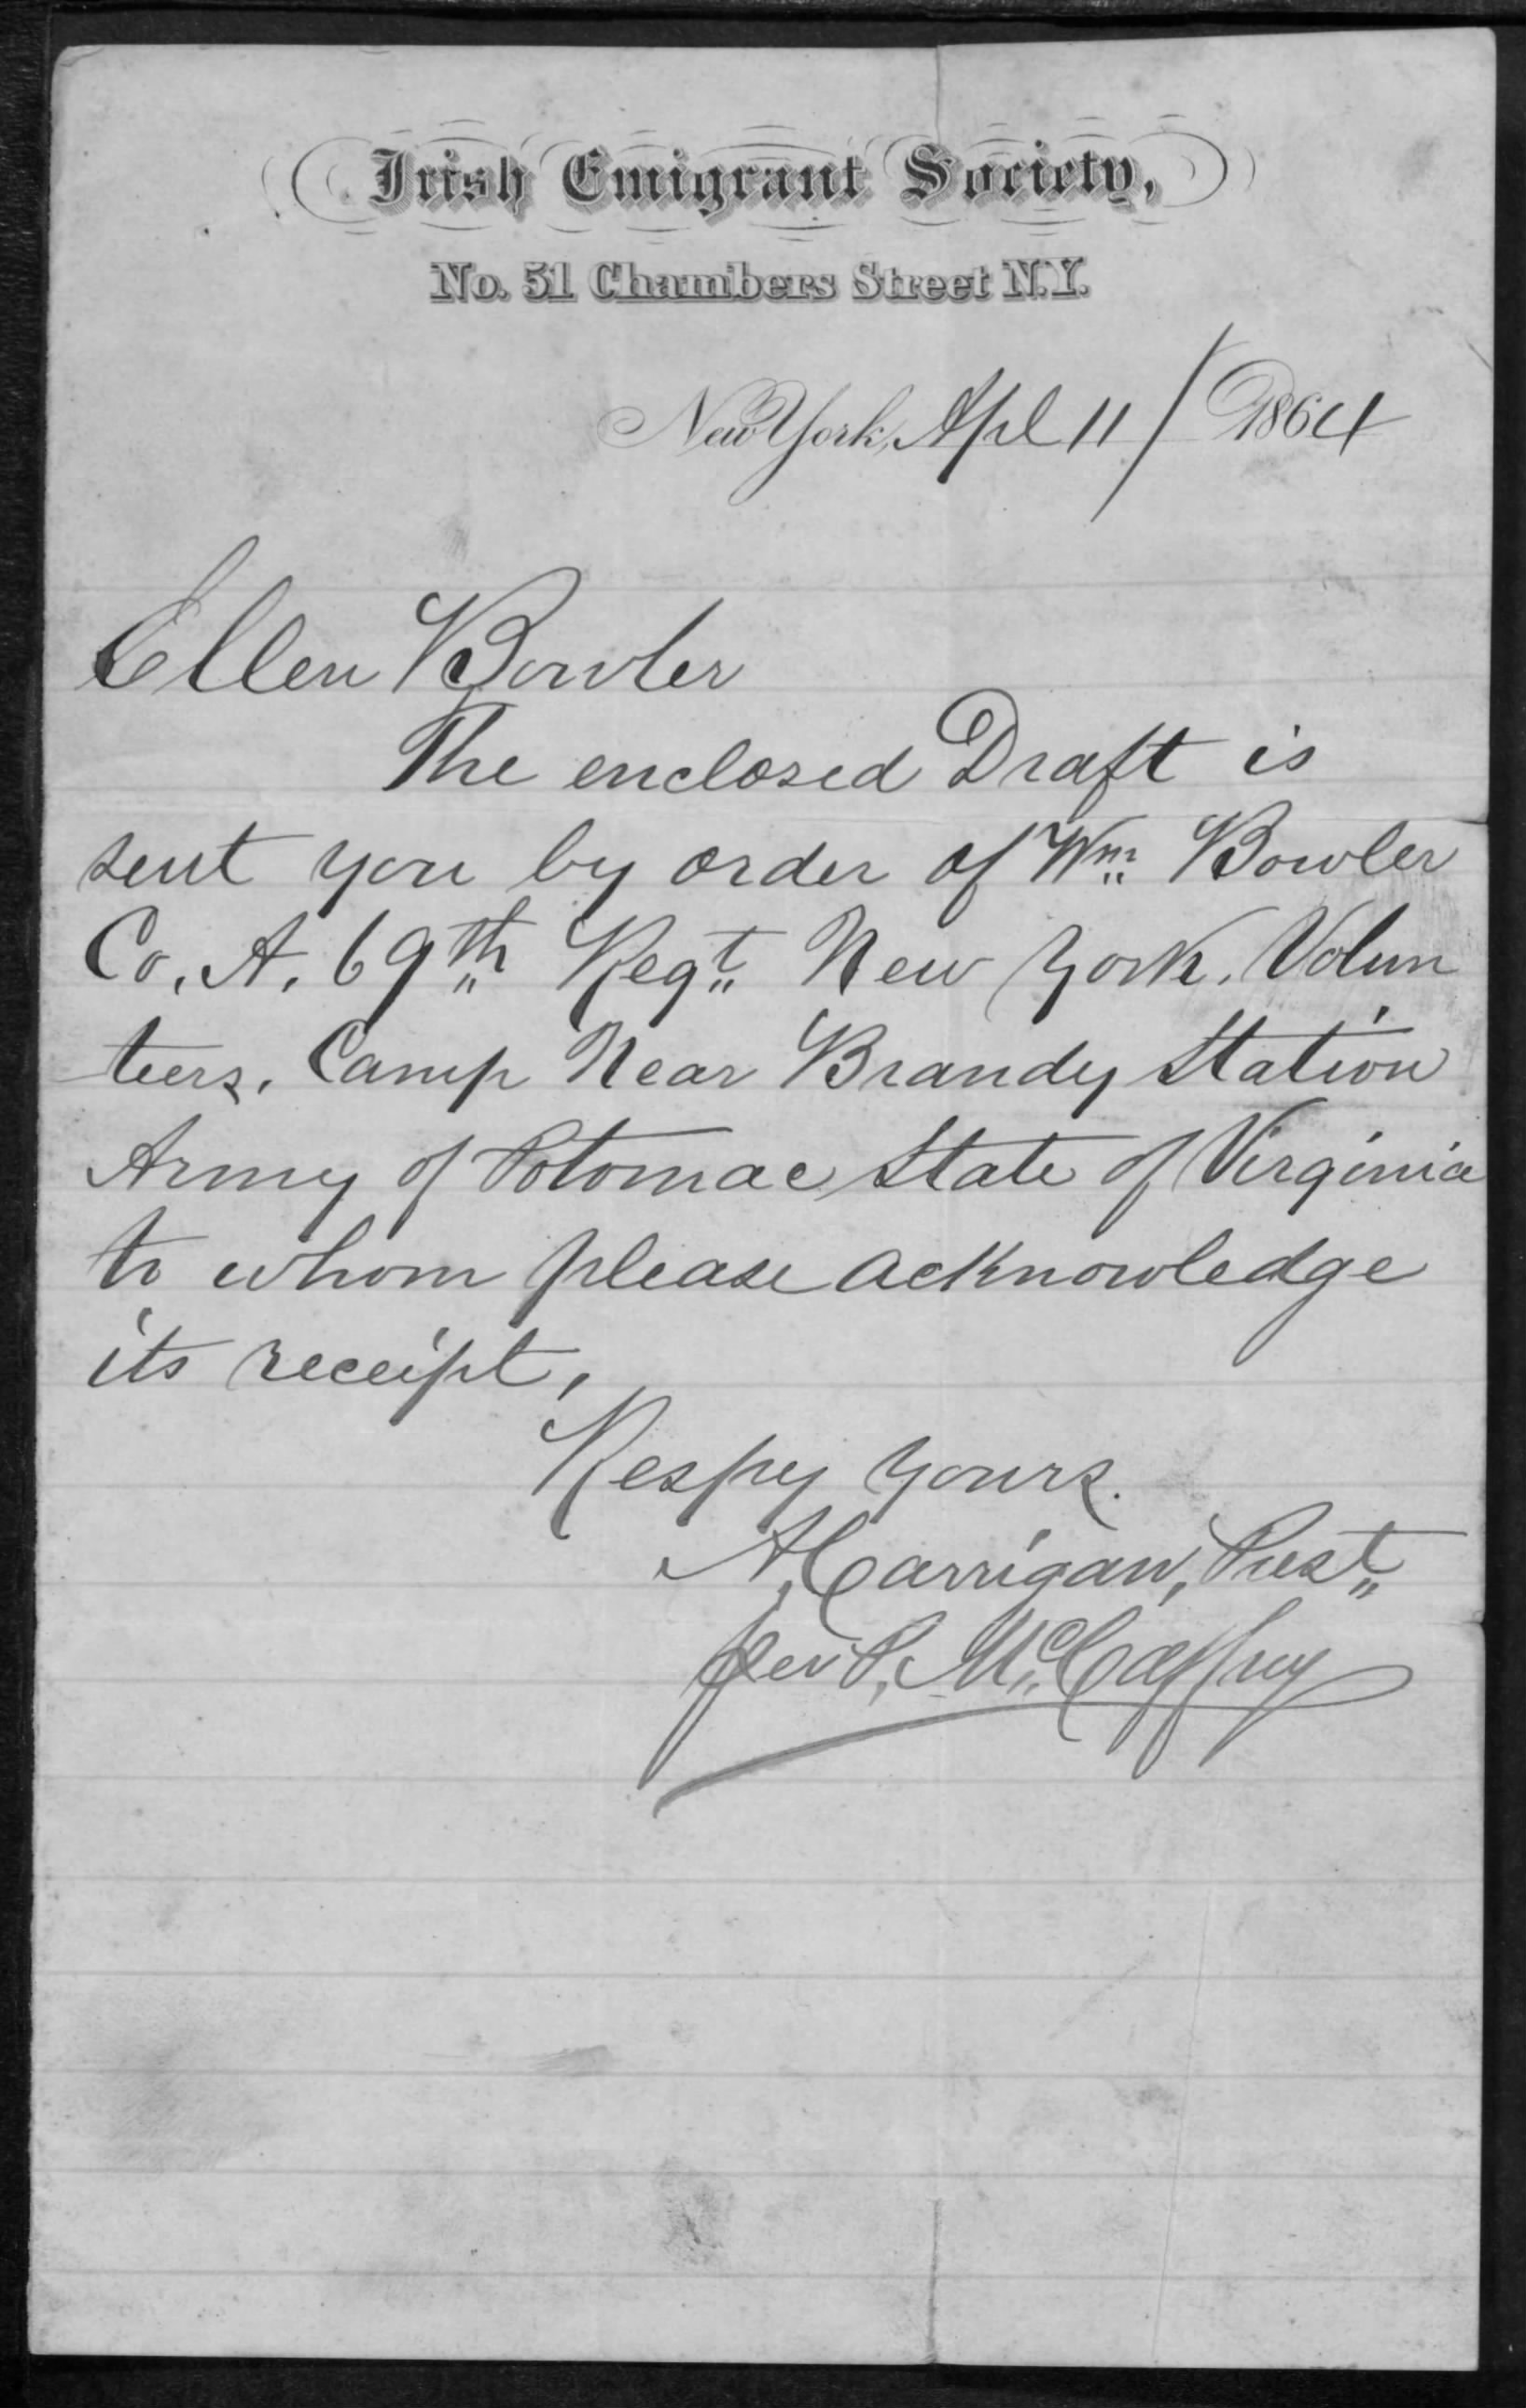 Irish Emigrant Society notice sent to Ellen Bowler in Youghal regarding her husband's payment (National Archives/Fold3)